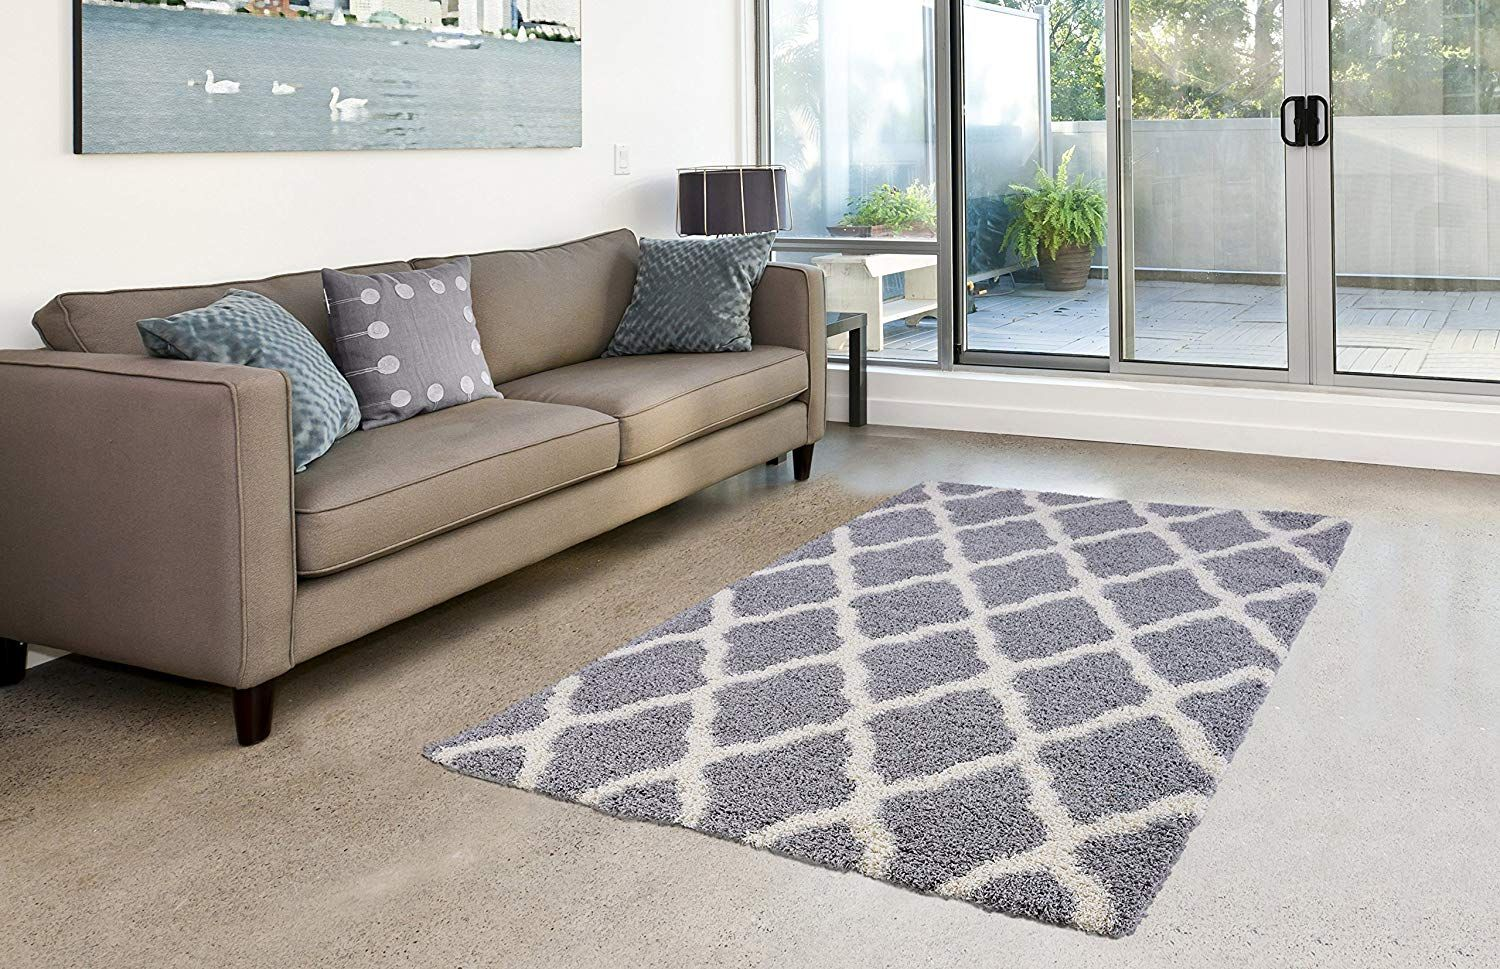 Amazon Com Pierre Cardin Luxury Shag Flokati Collection Trellis Rug Design Abstract Area Rugs For Living Room Indoor Outdoor Rugs Outdoor Rugs Brown Area Rugs